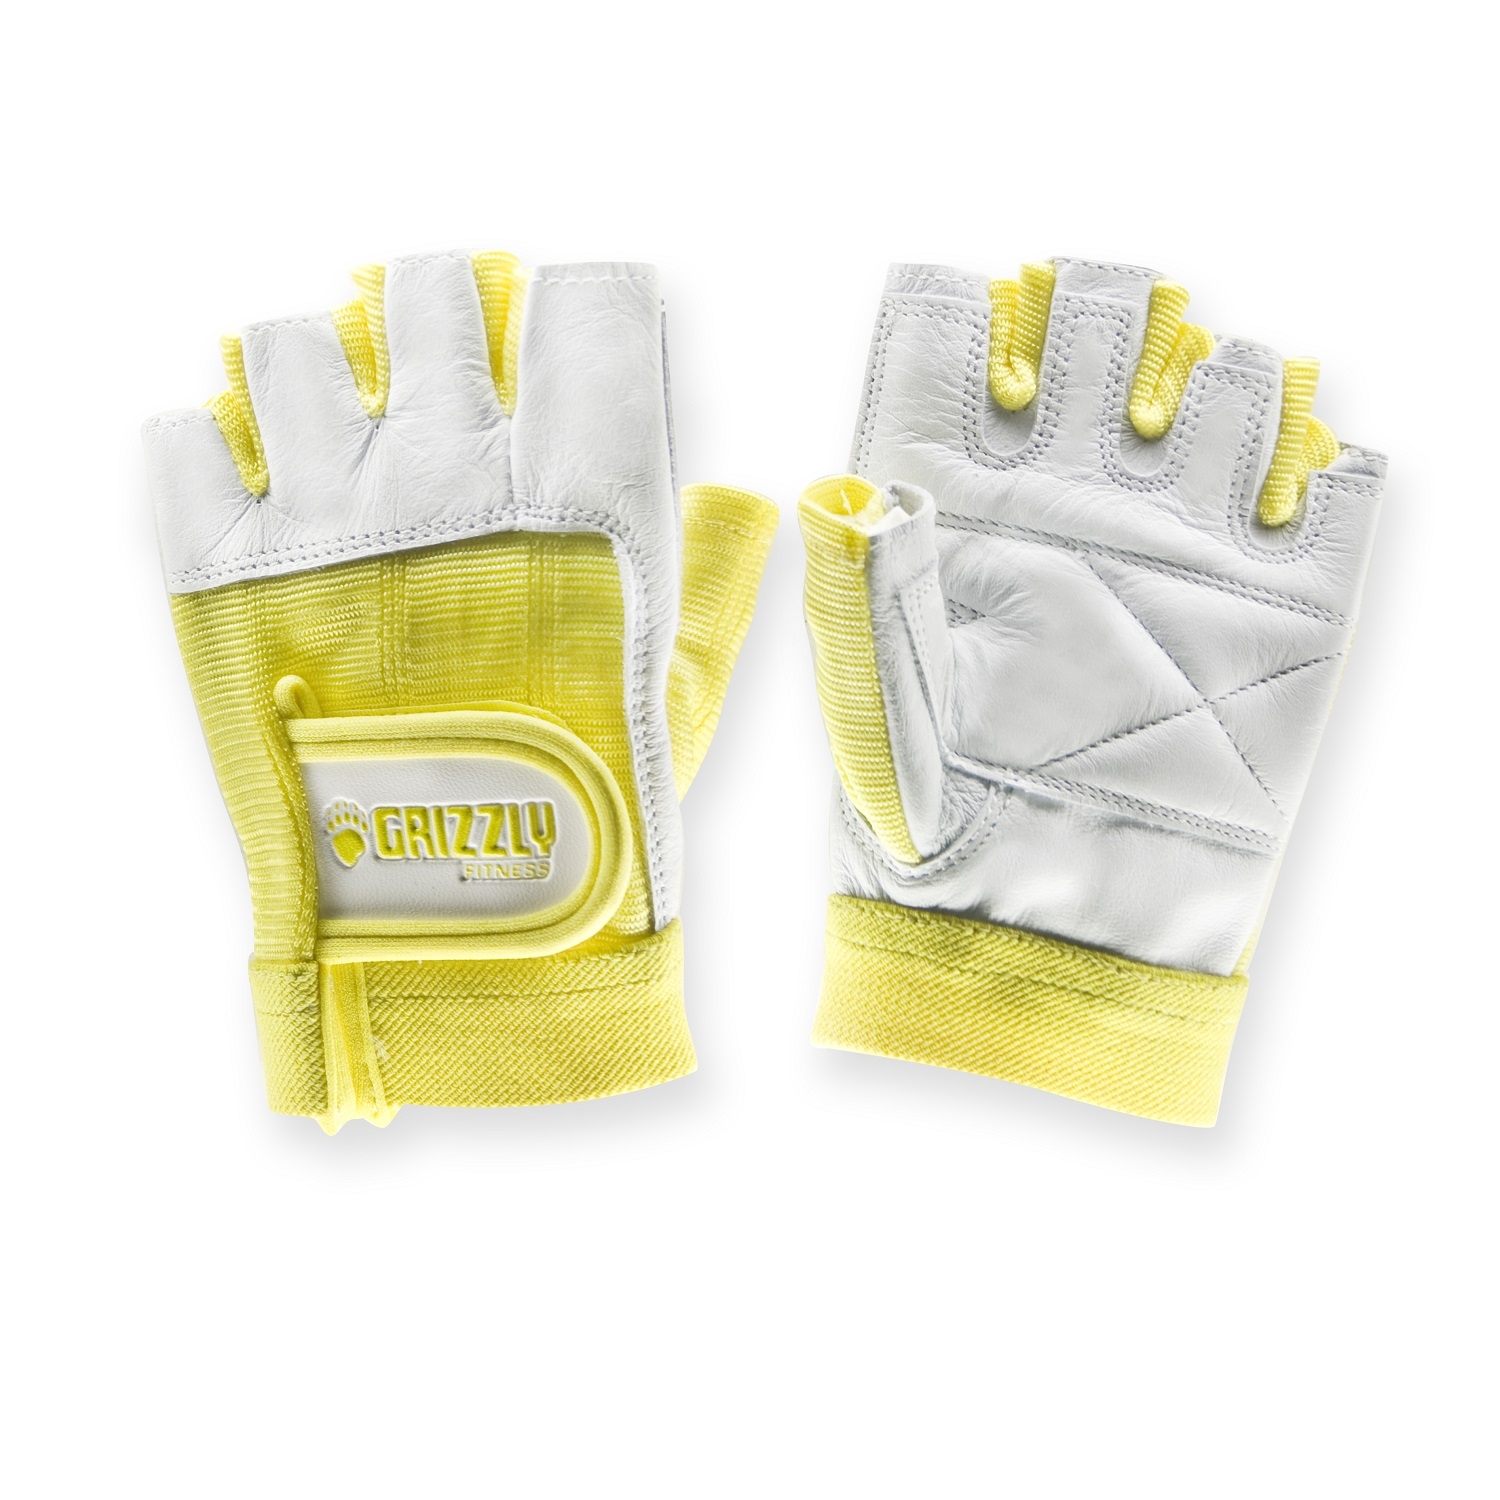 Womens Yellow Grizzly Paw Gloves - Large